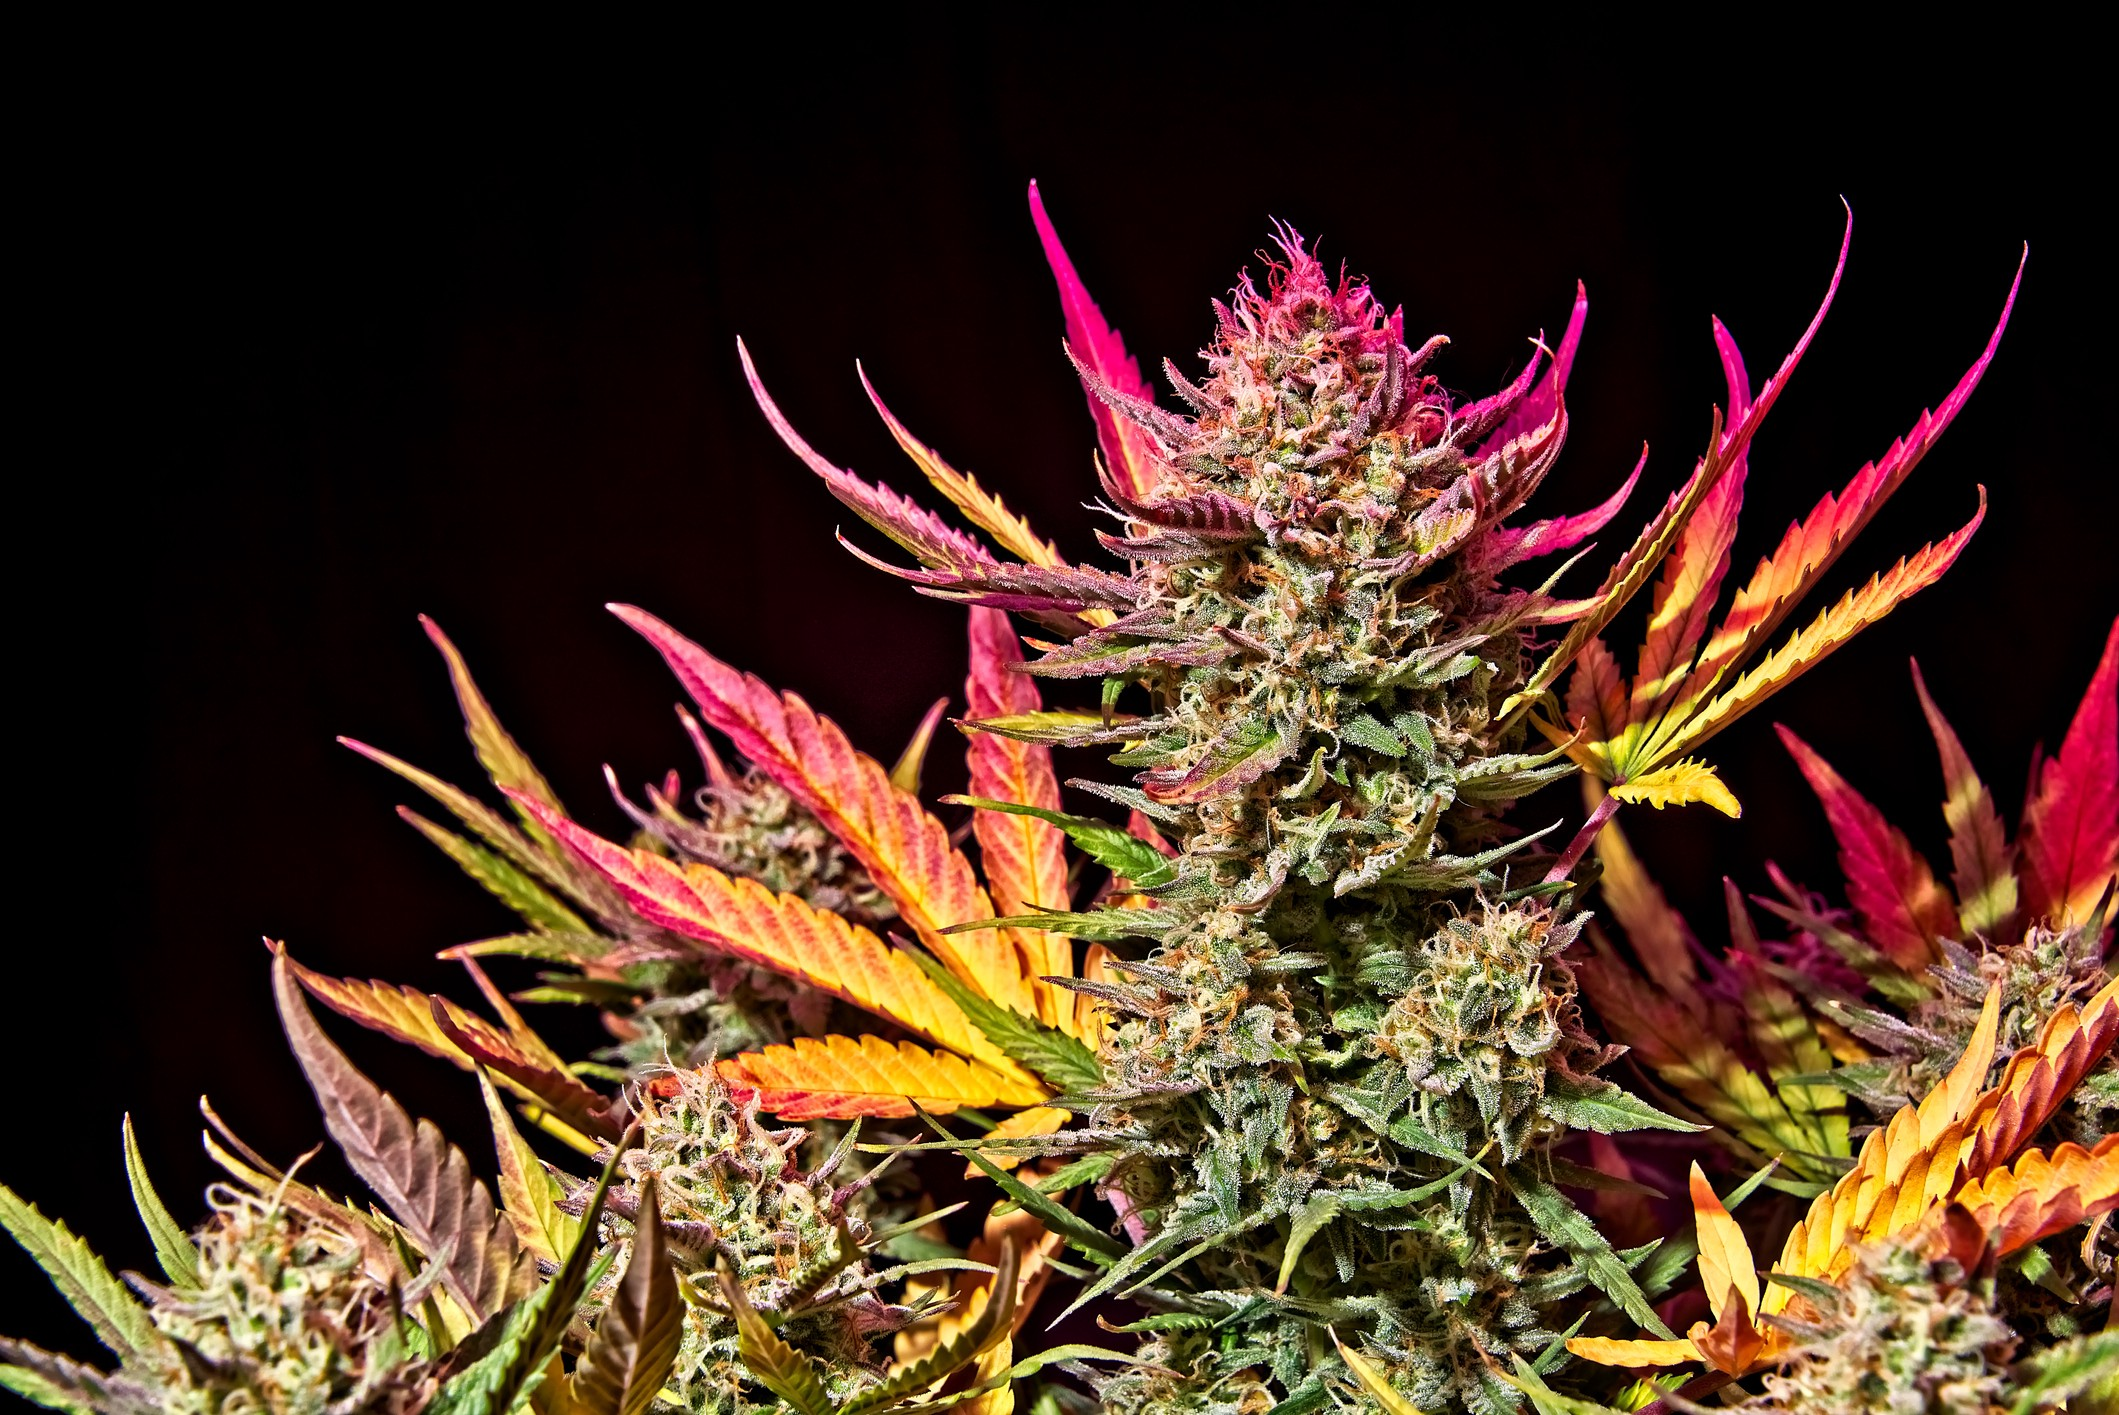 7 Tips and Tricks to Maximize Yields in Autoflowers